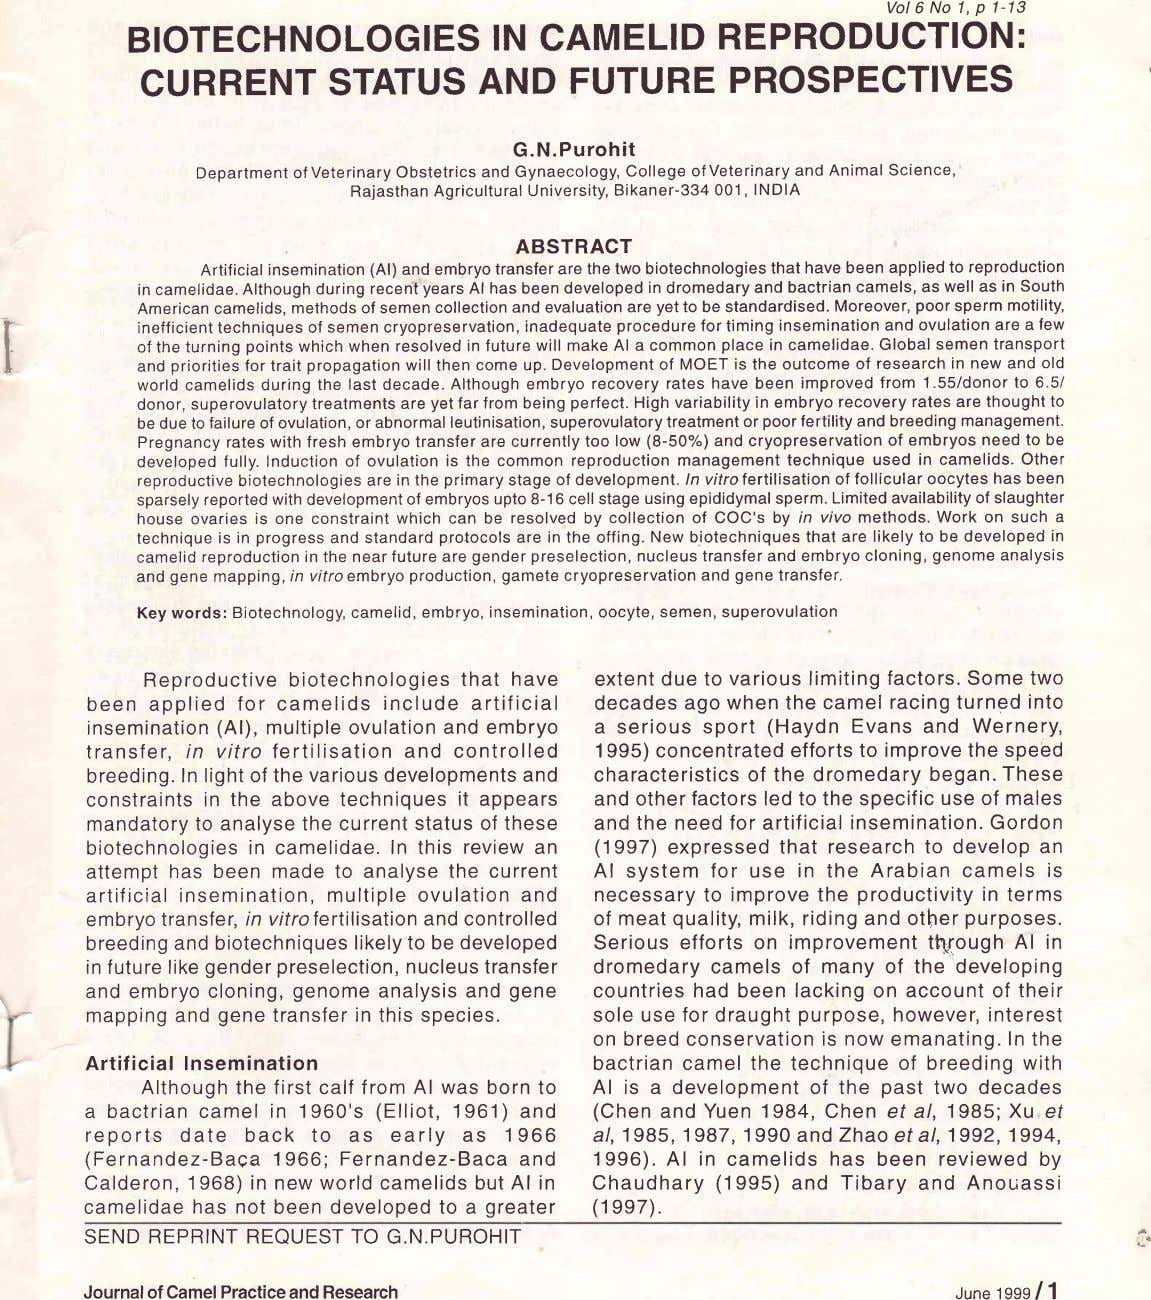 Vol 6 No 1, p 1-13 BIOTECHNOLOGIES IN CAMELID REPRODUCTION: CURRENT STATUS AND FUTURE PROSPECTIVES